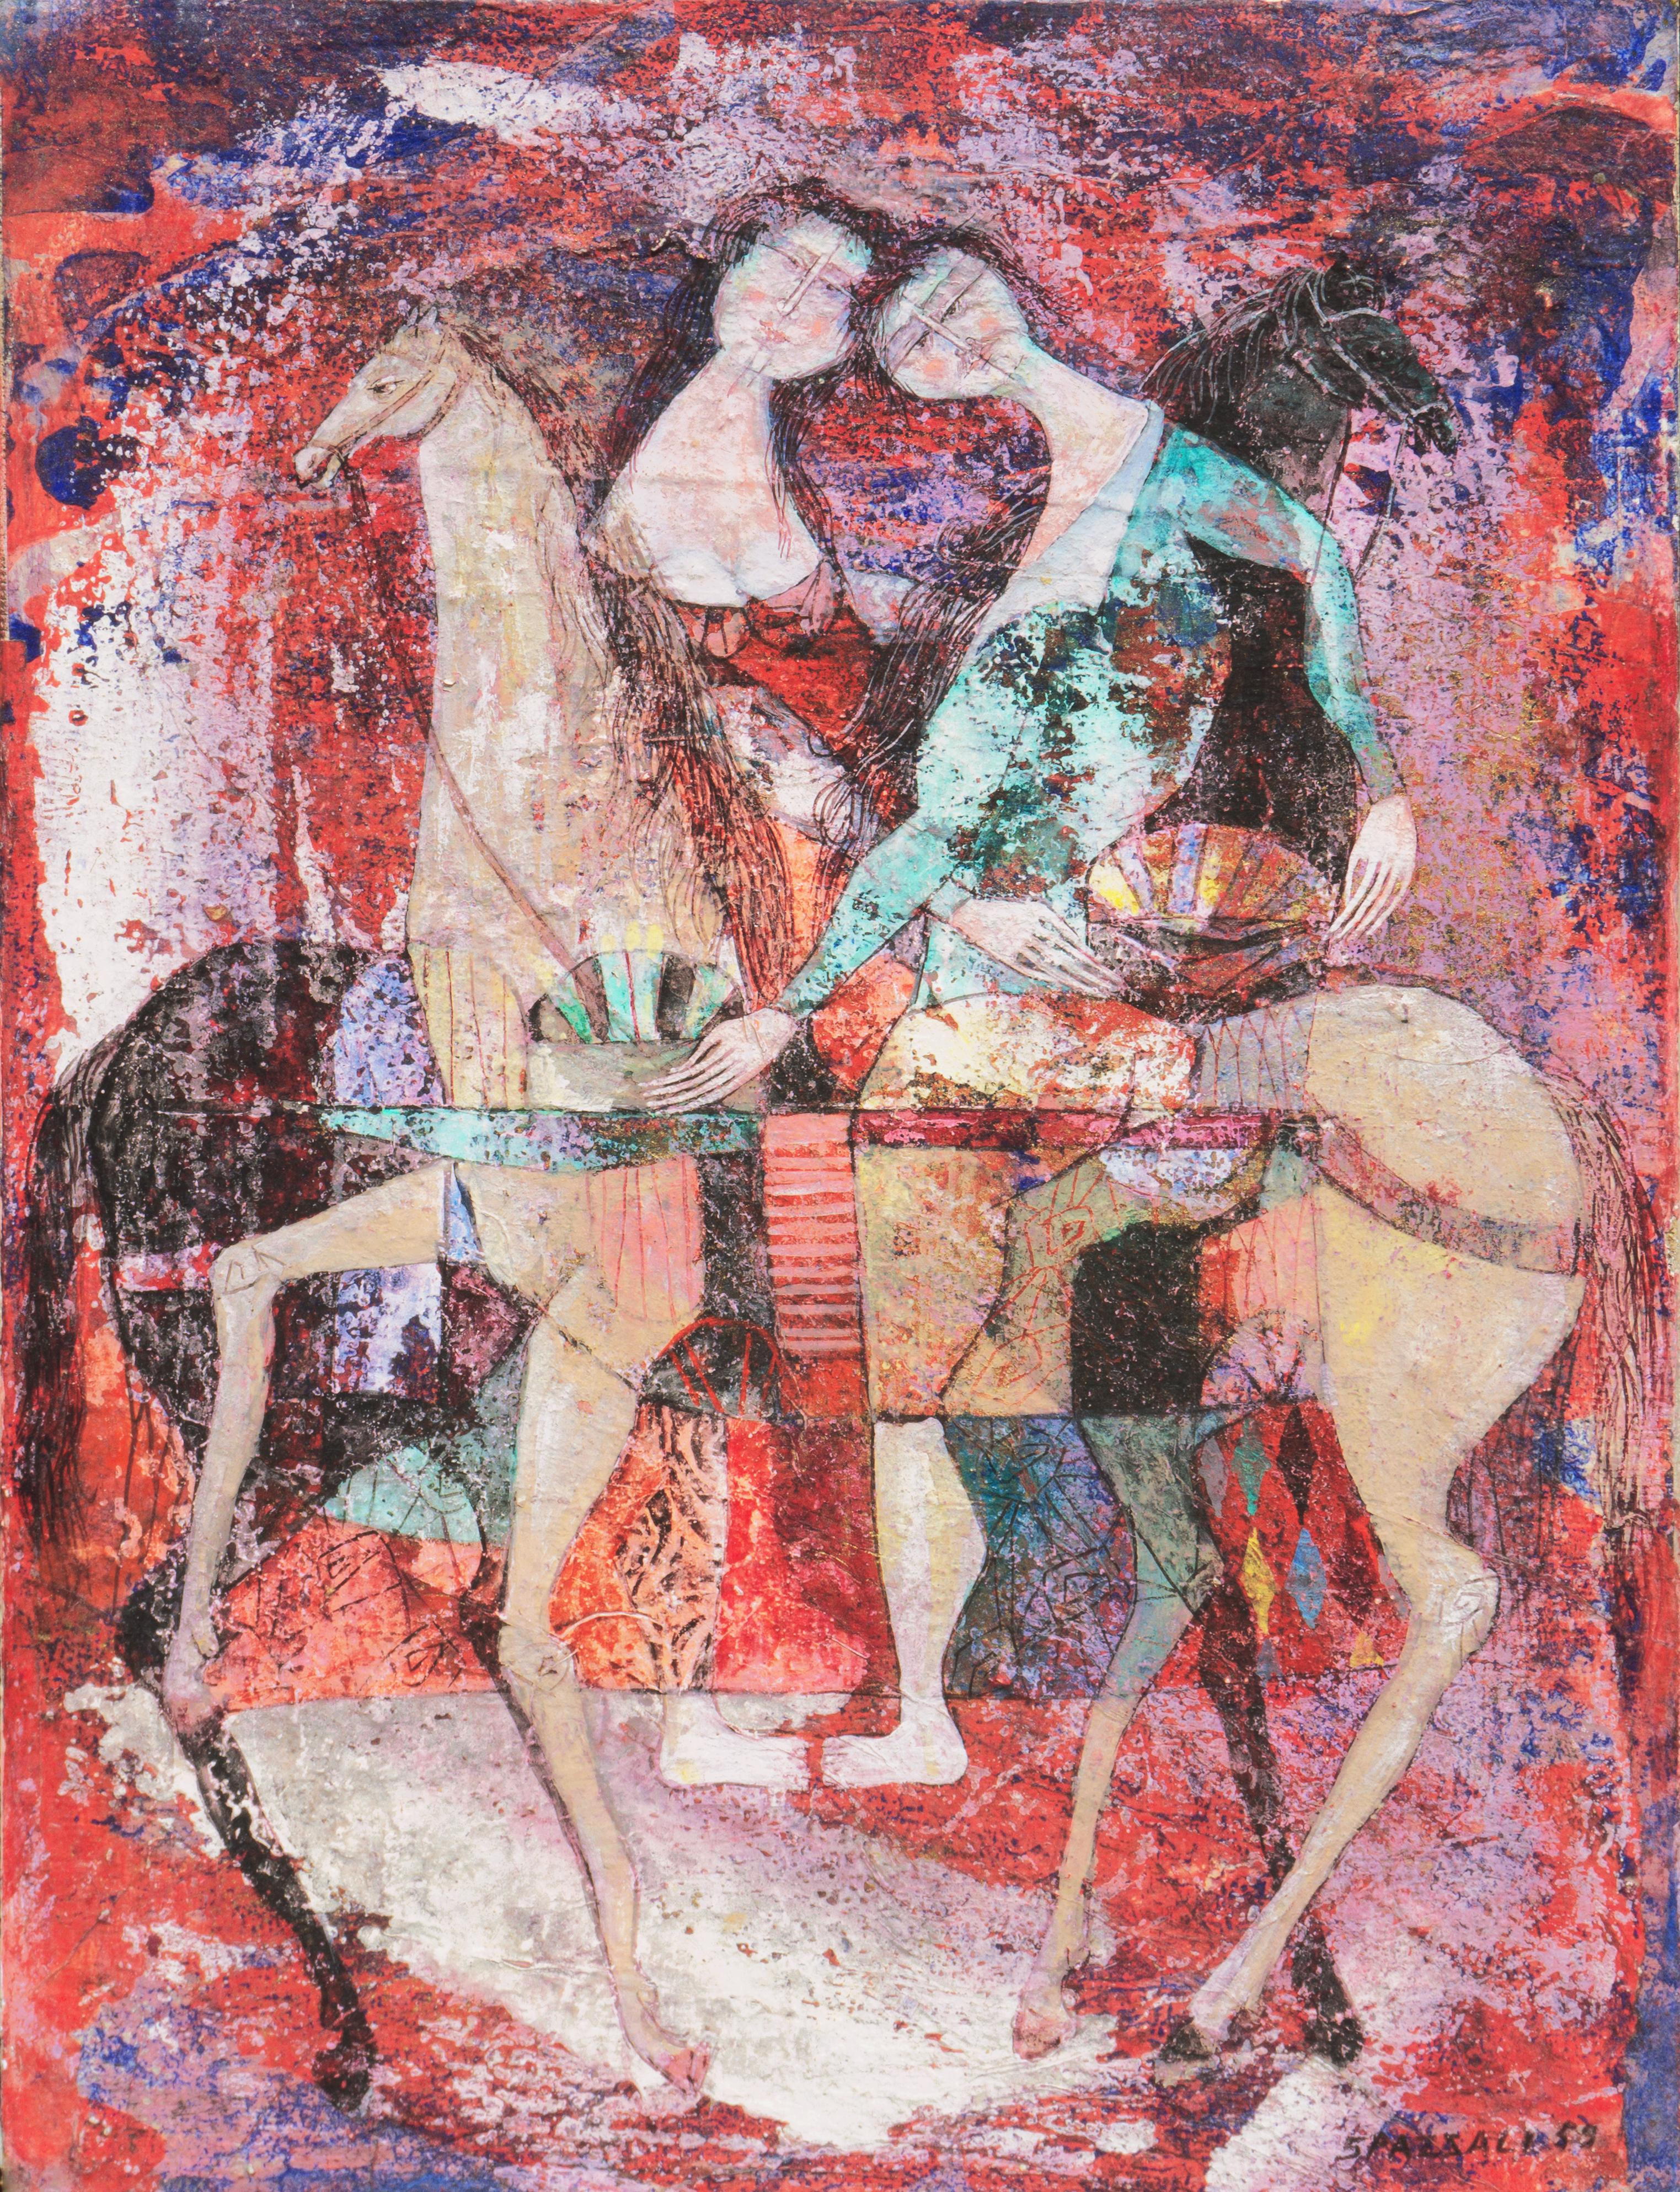 'Riders Against a Red Background', Italian Modernism, Horses, Avant-garde